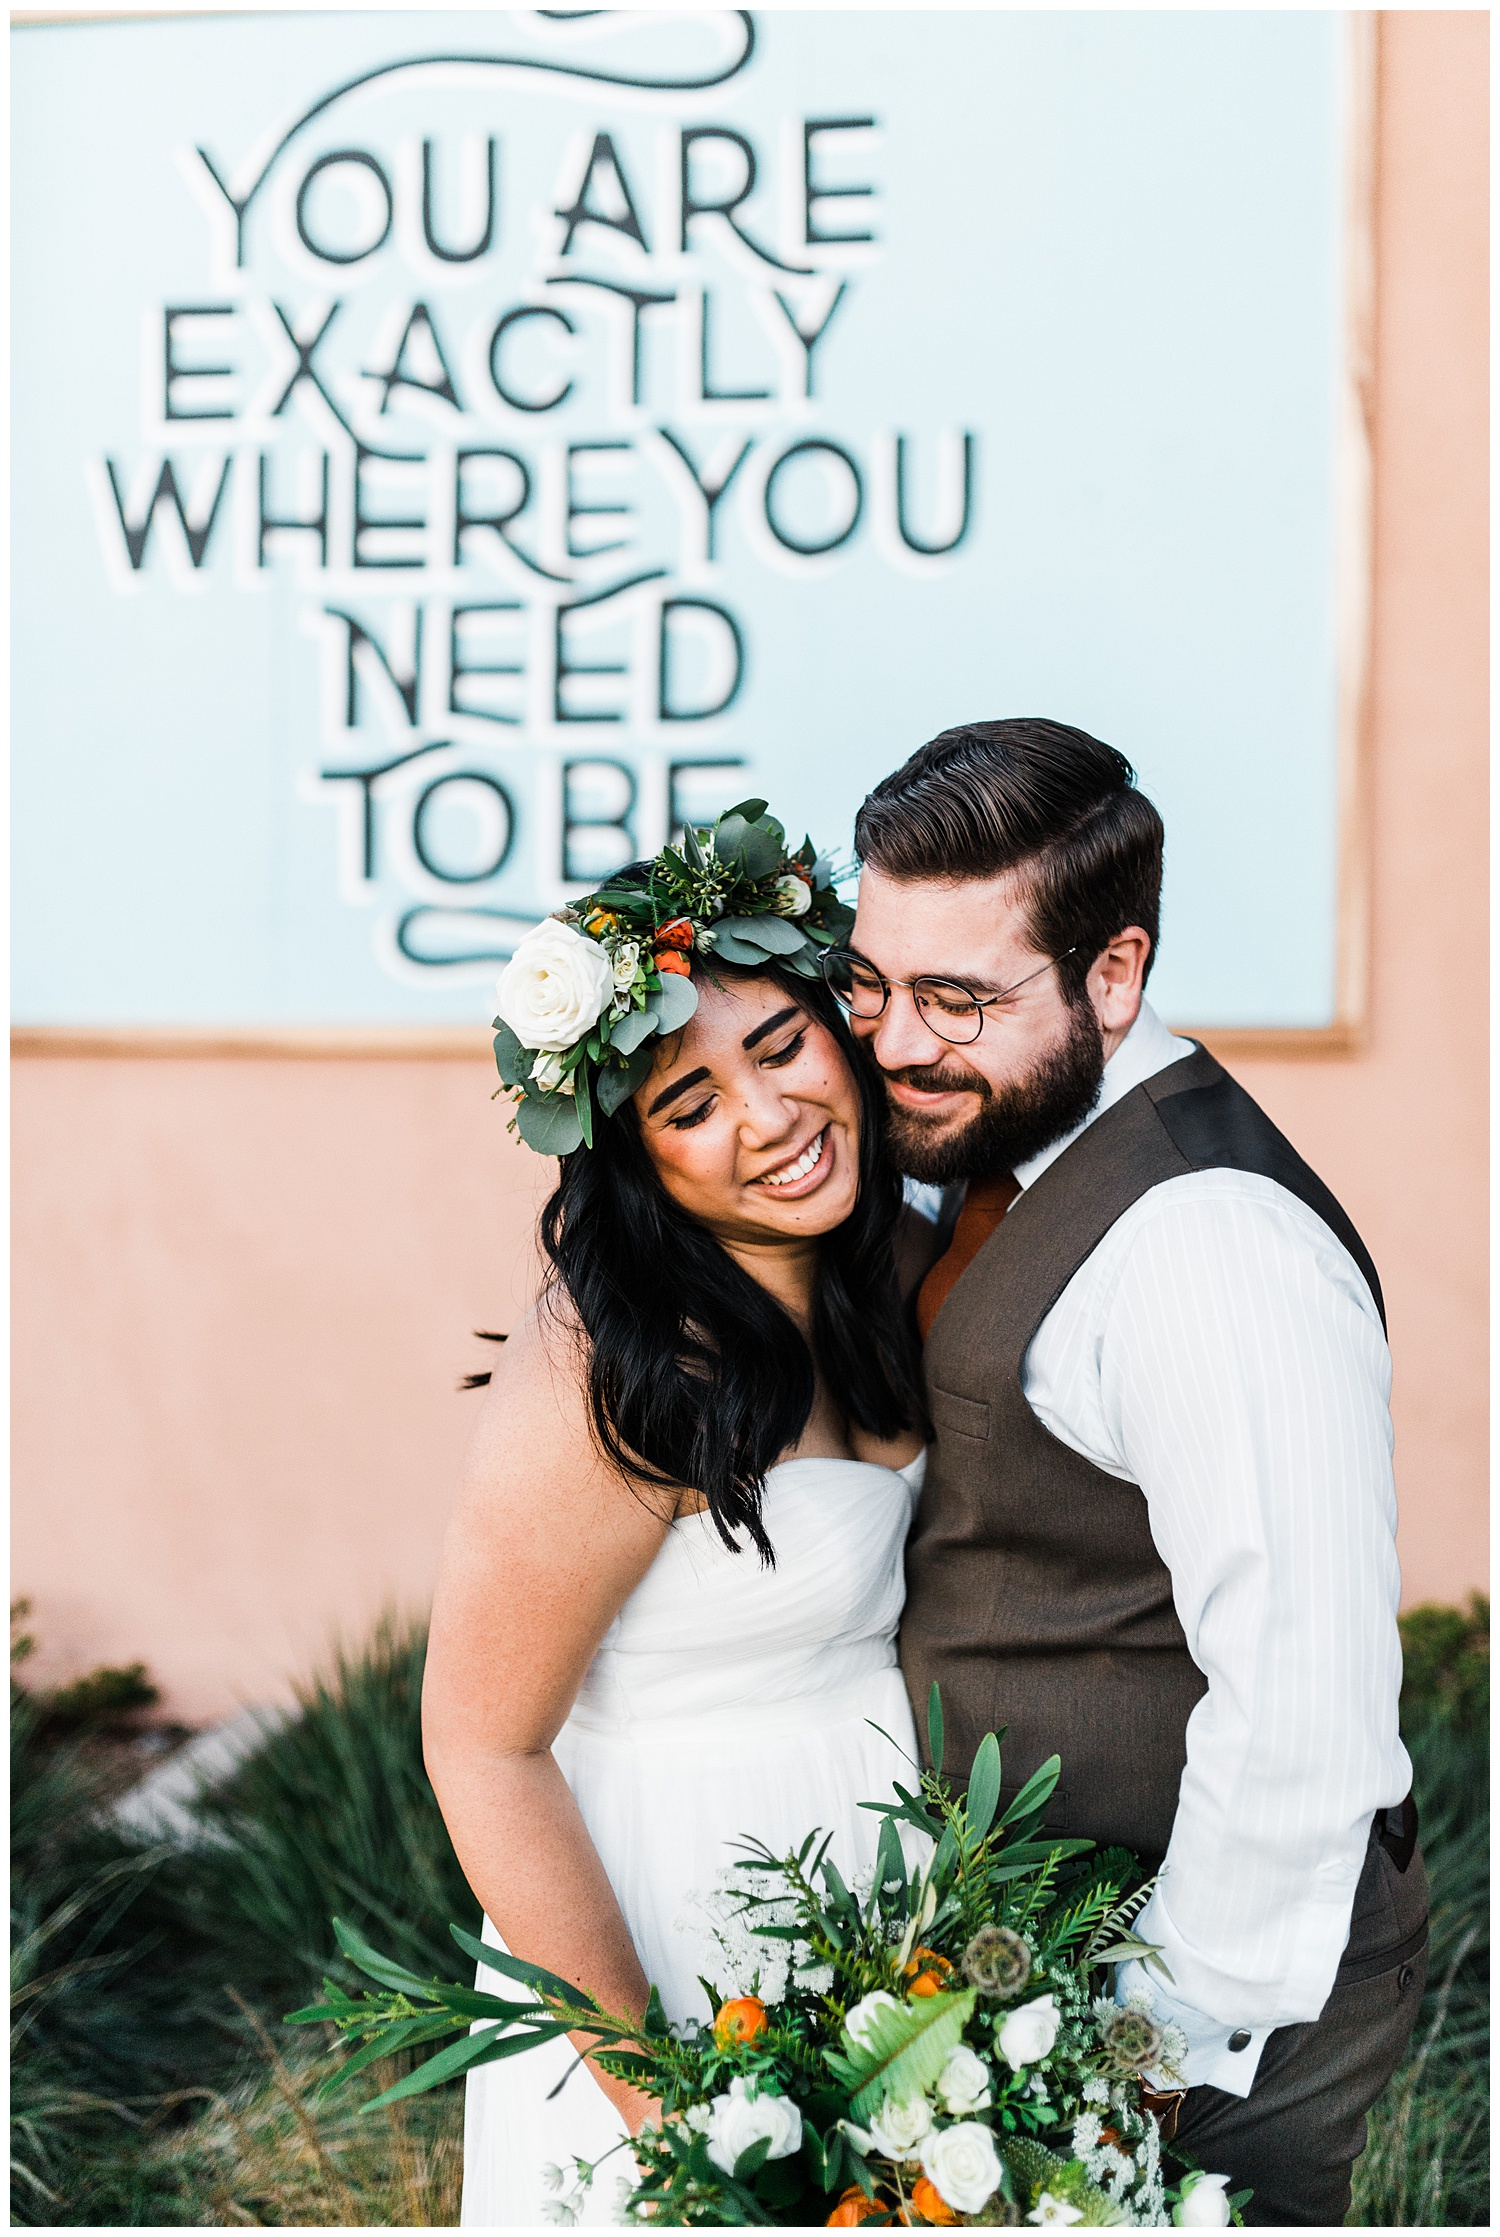 you're here! - That can only mean one thing! You're truly, madly, deeply, head over heels in LOVE. That's awesome! We'd love nothing more than to capture all that amazingness with our magic picture boxes and tell your unique love story!